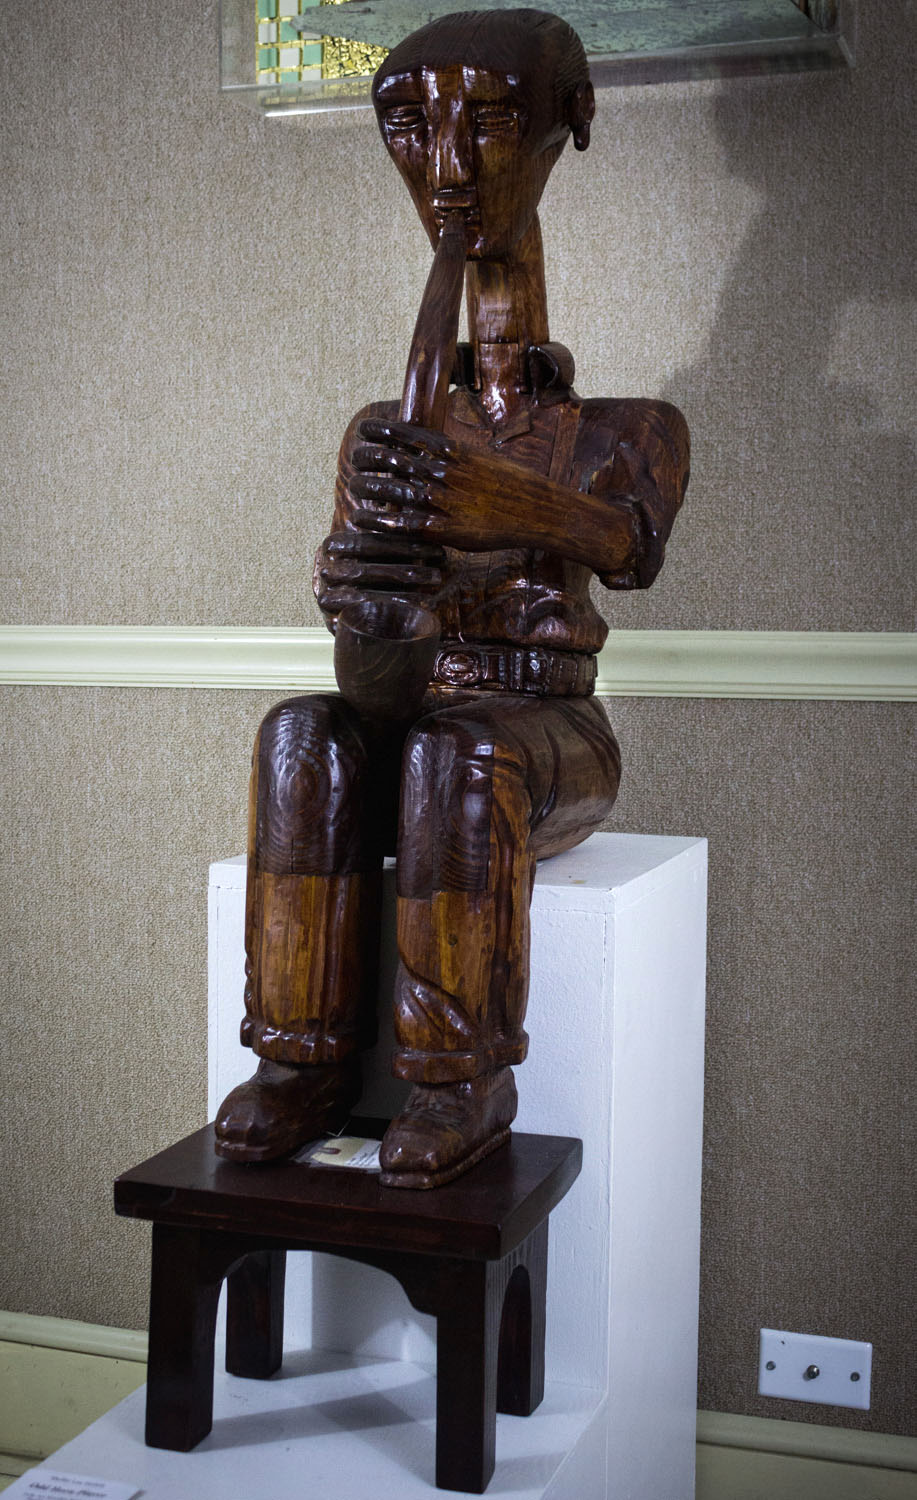 The Musician by Shelby Horton, Wood Carving